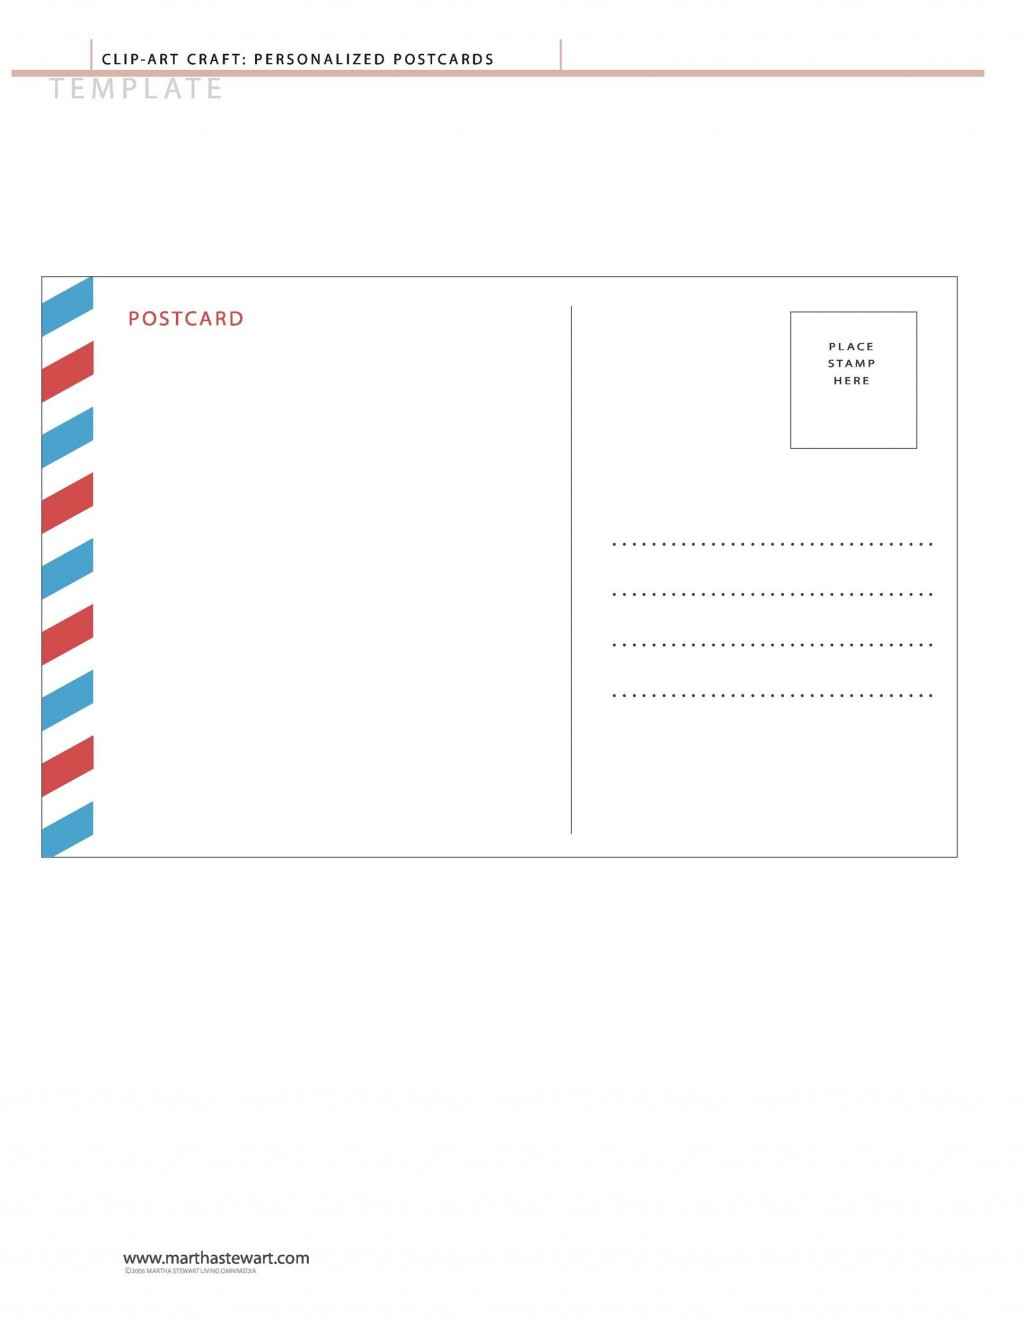 009 Unique Postcard Template Download Microsoft Word Inspiration Large